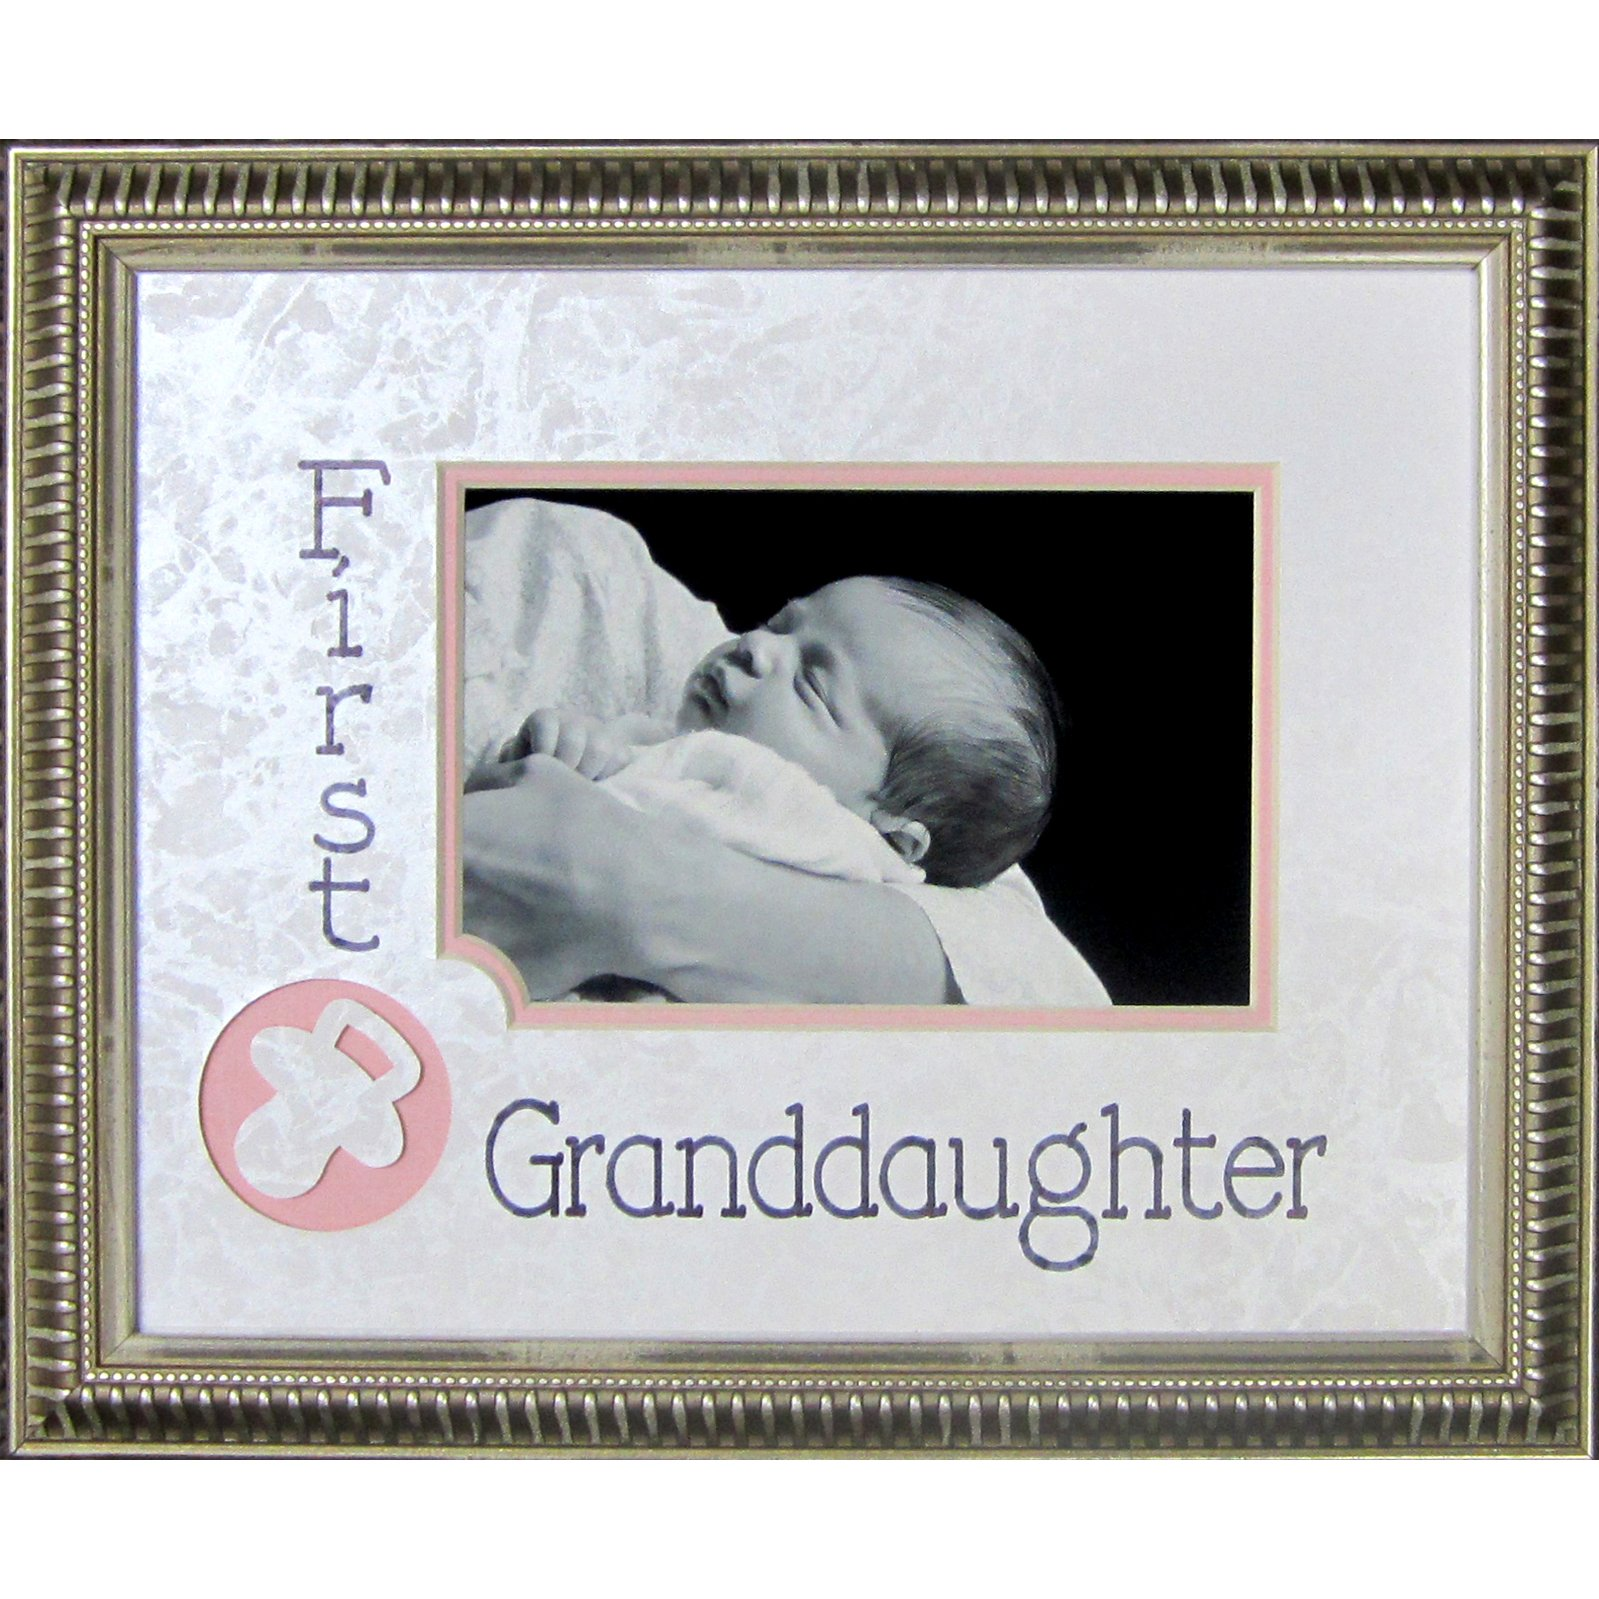 First Granddaughter Photo Frame